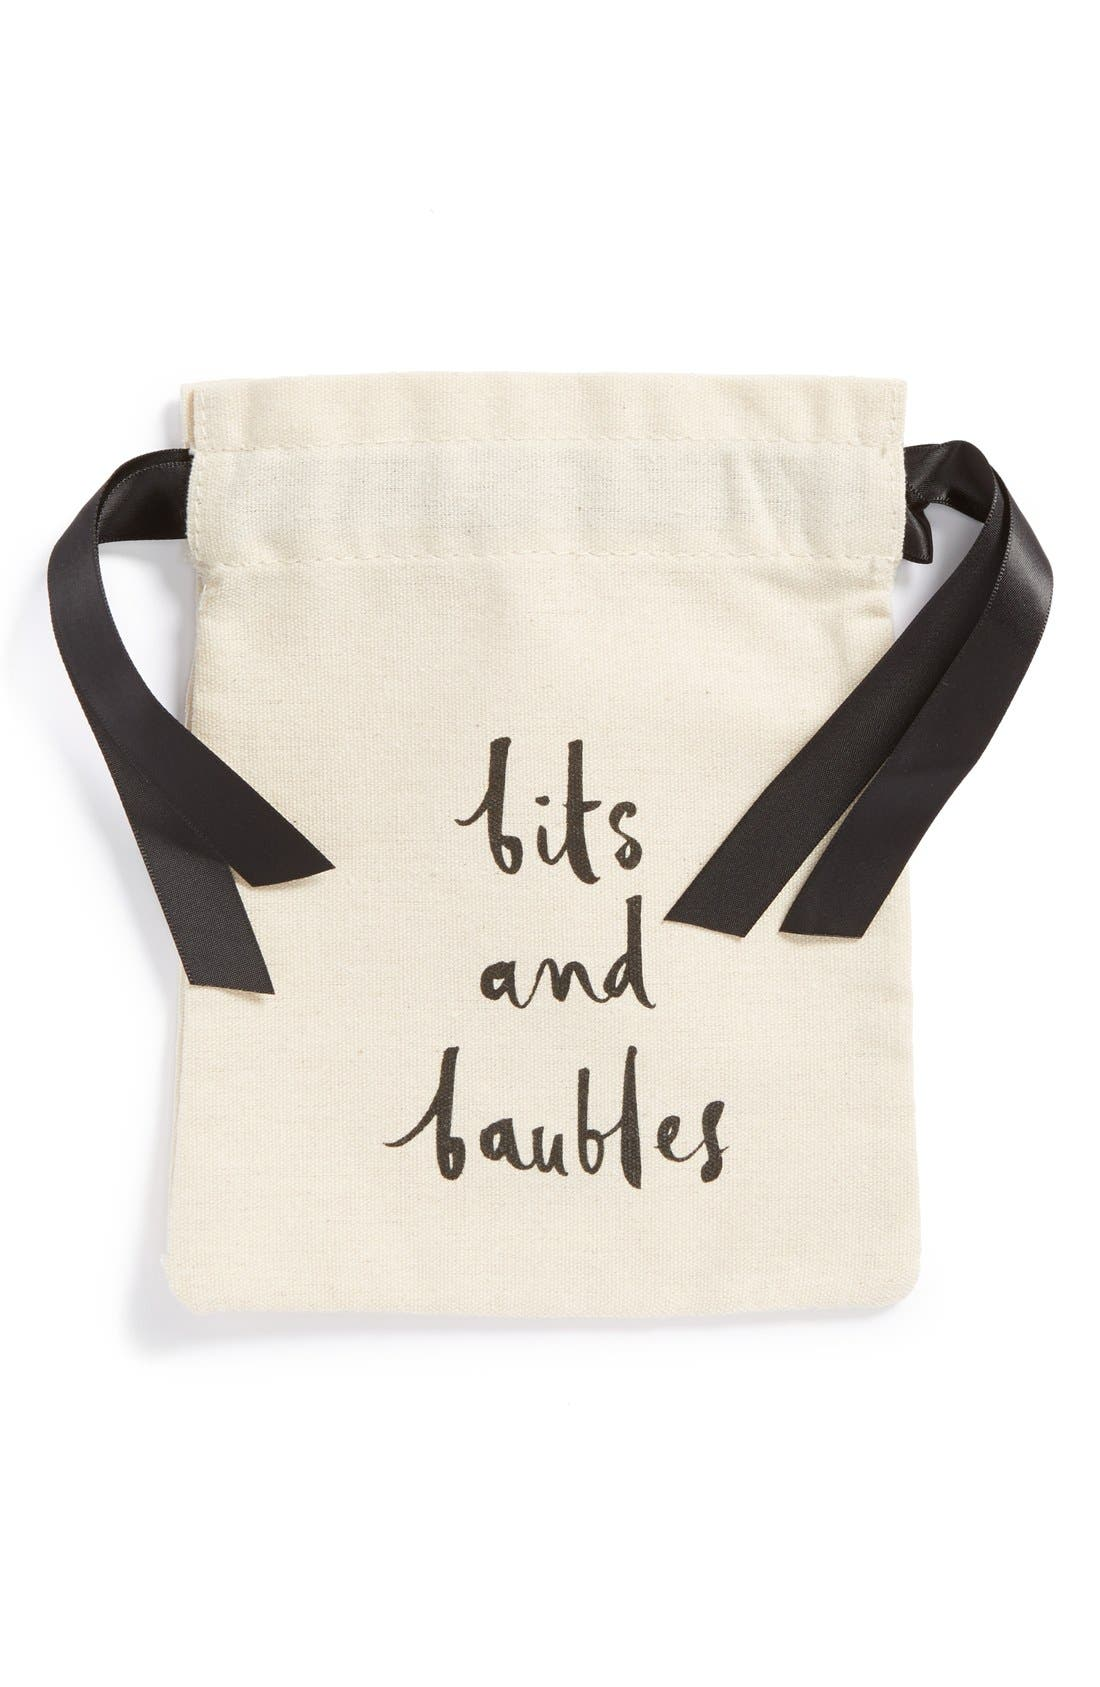 Main Image - kate spade new york 'bits and baubles' jewelry pouch